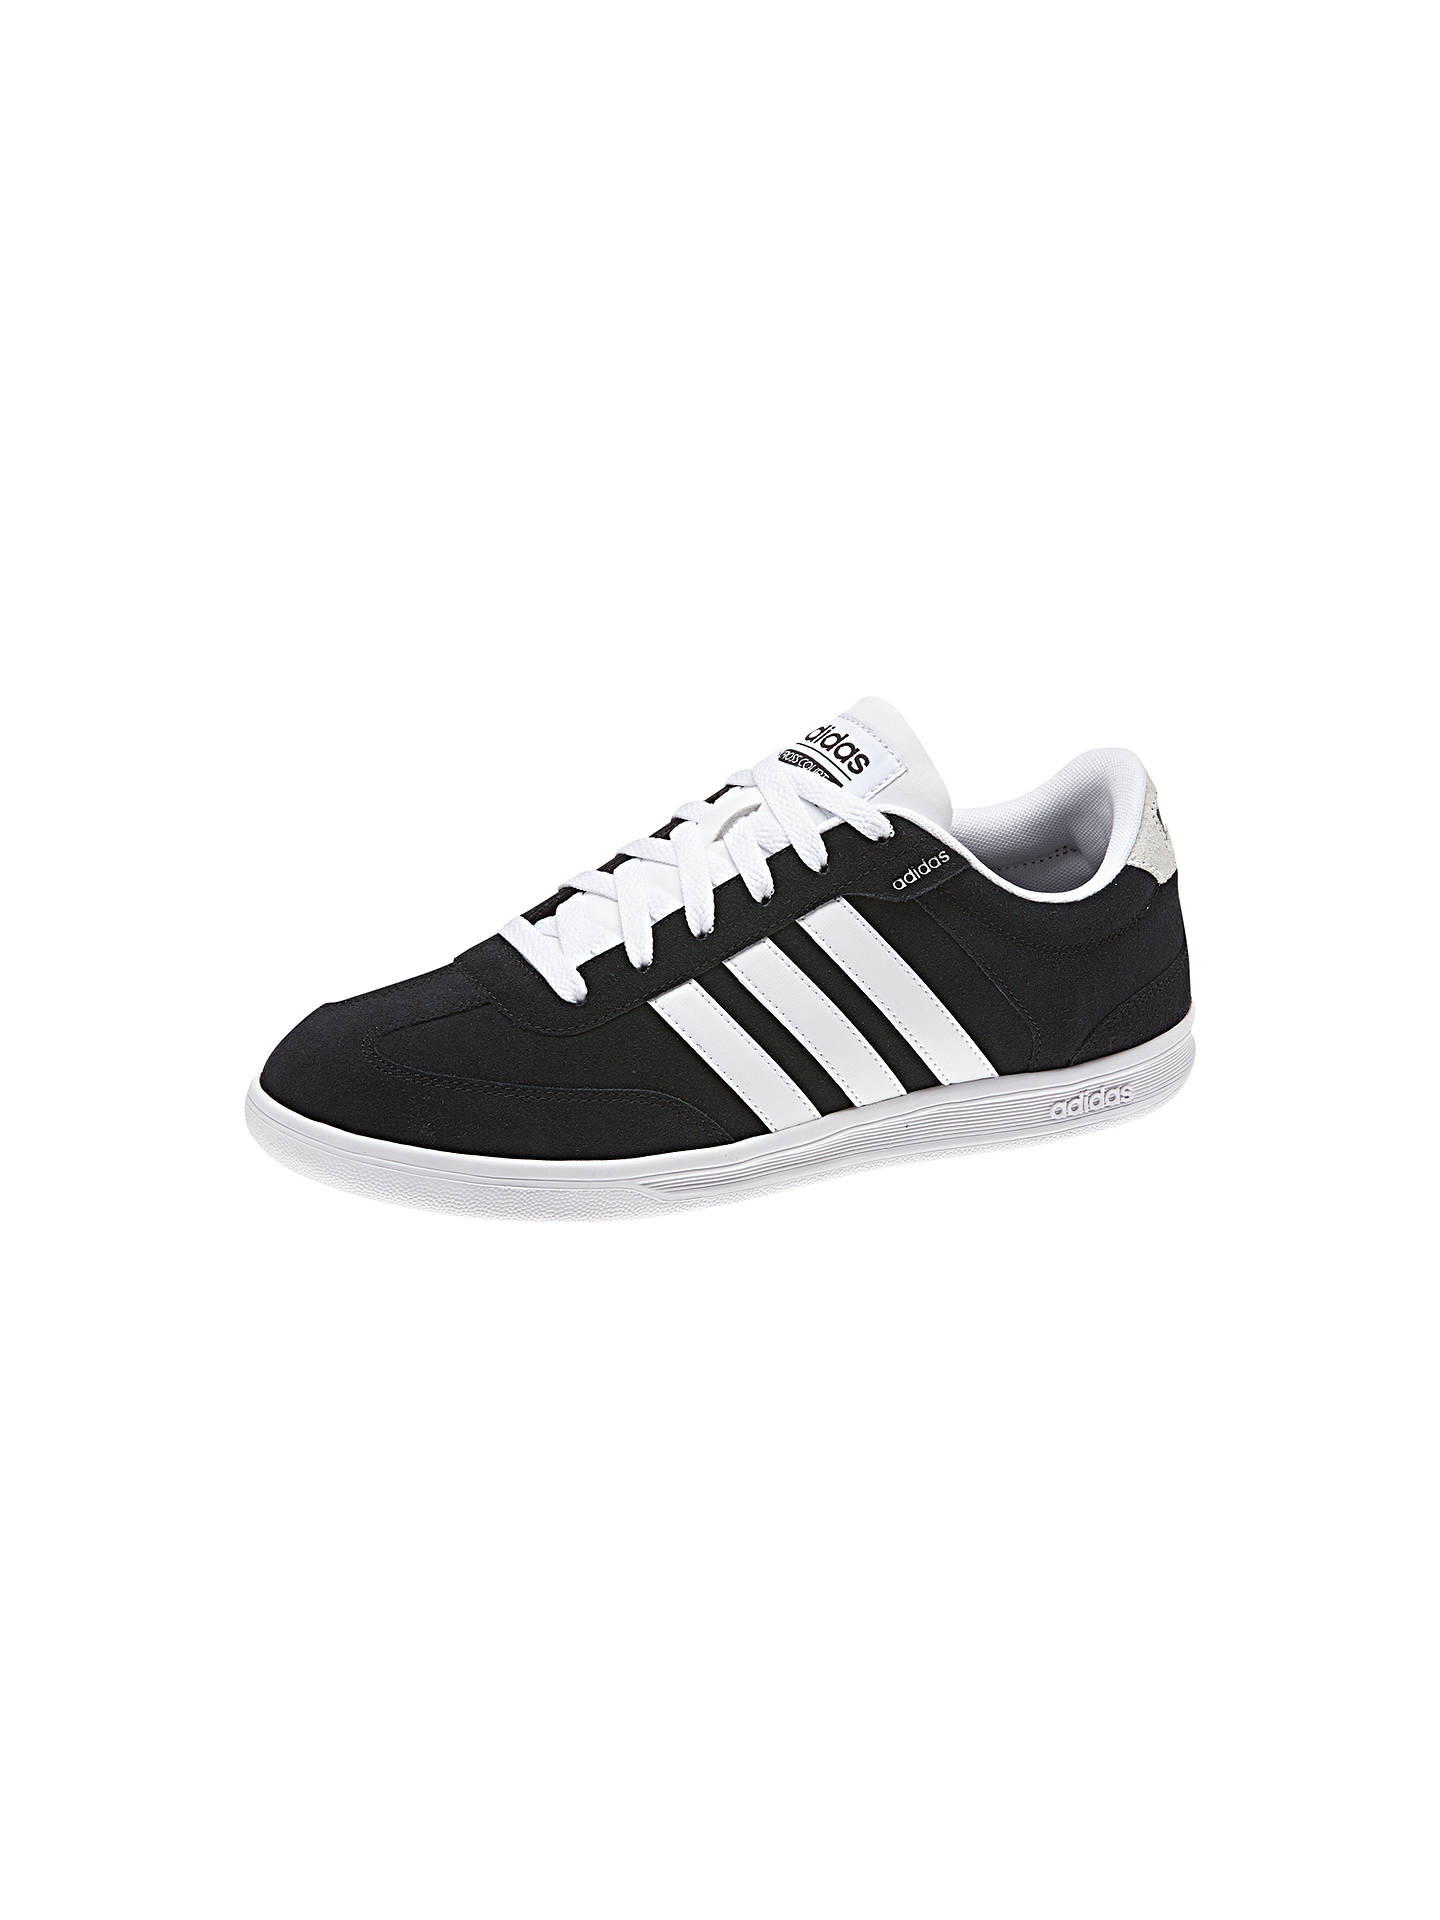 beauty half price really comfortable Adidas Neo Cross Court Men's Trainers at John Lewis & Partners